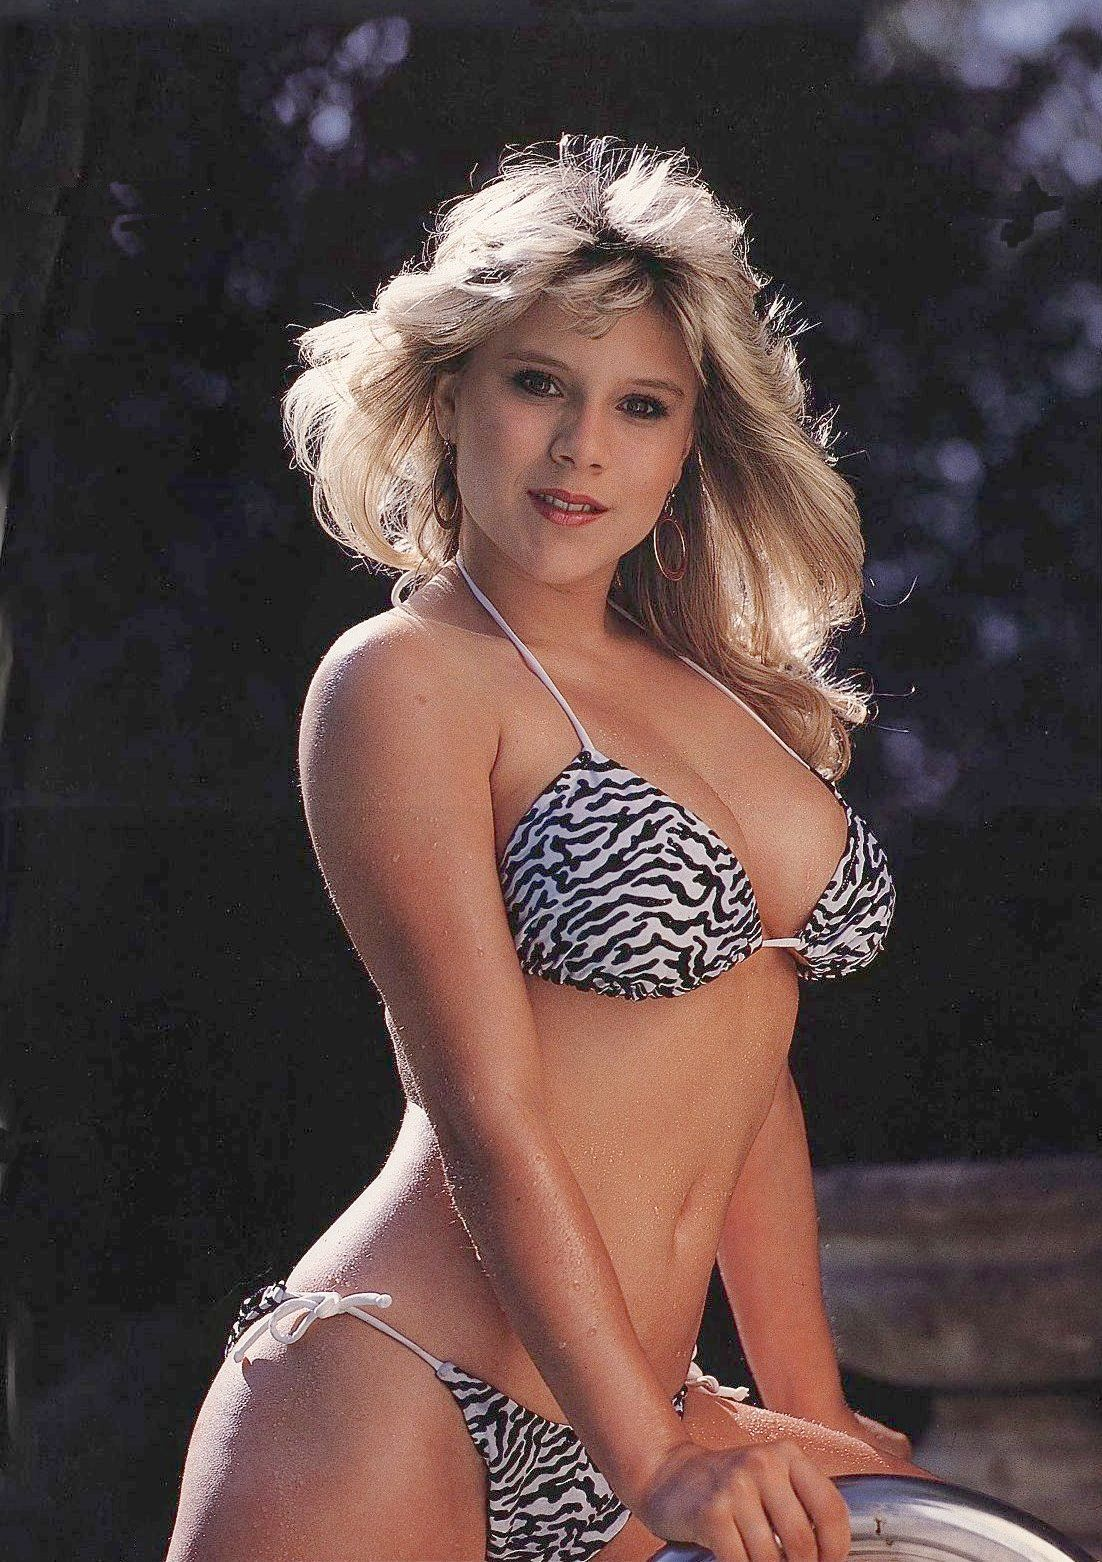 Young Samantha Fox nude (16 photo), Topless, Fappening, Feet, lingerie 2020